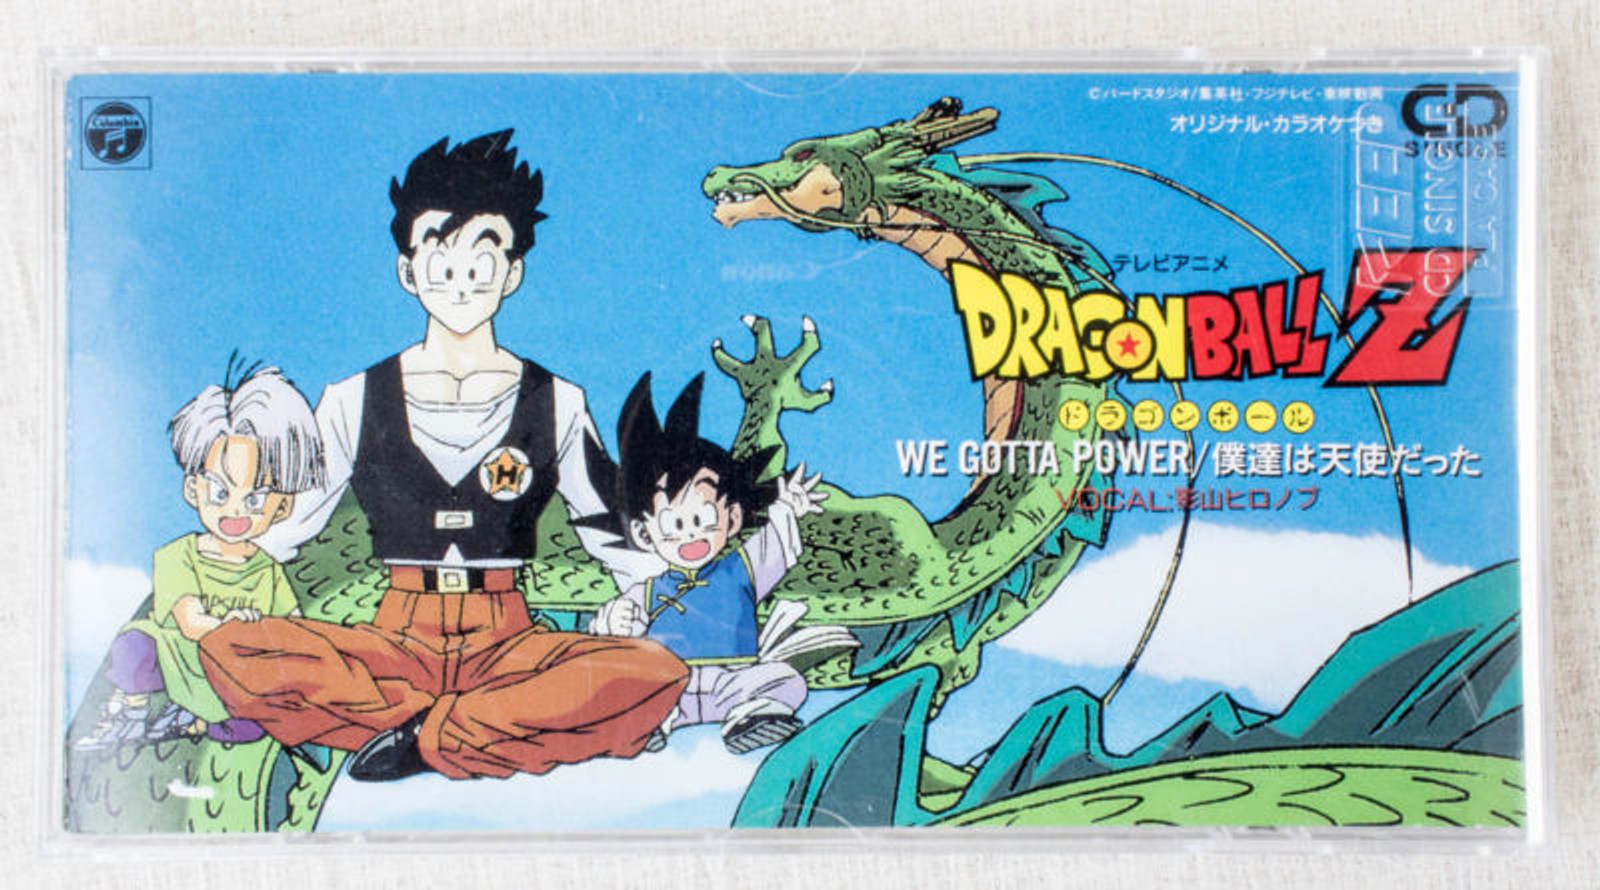 Dragon Ball Z theme WE GOTTA POWER Kageyama Hironobu 3 inch 8cm JAPAN CD ANIME